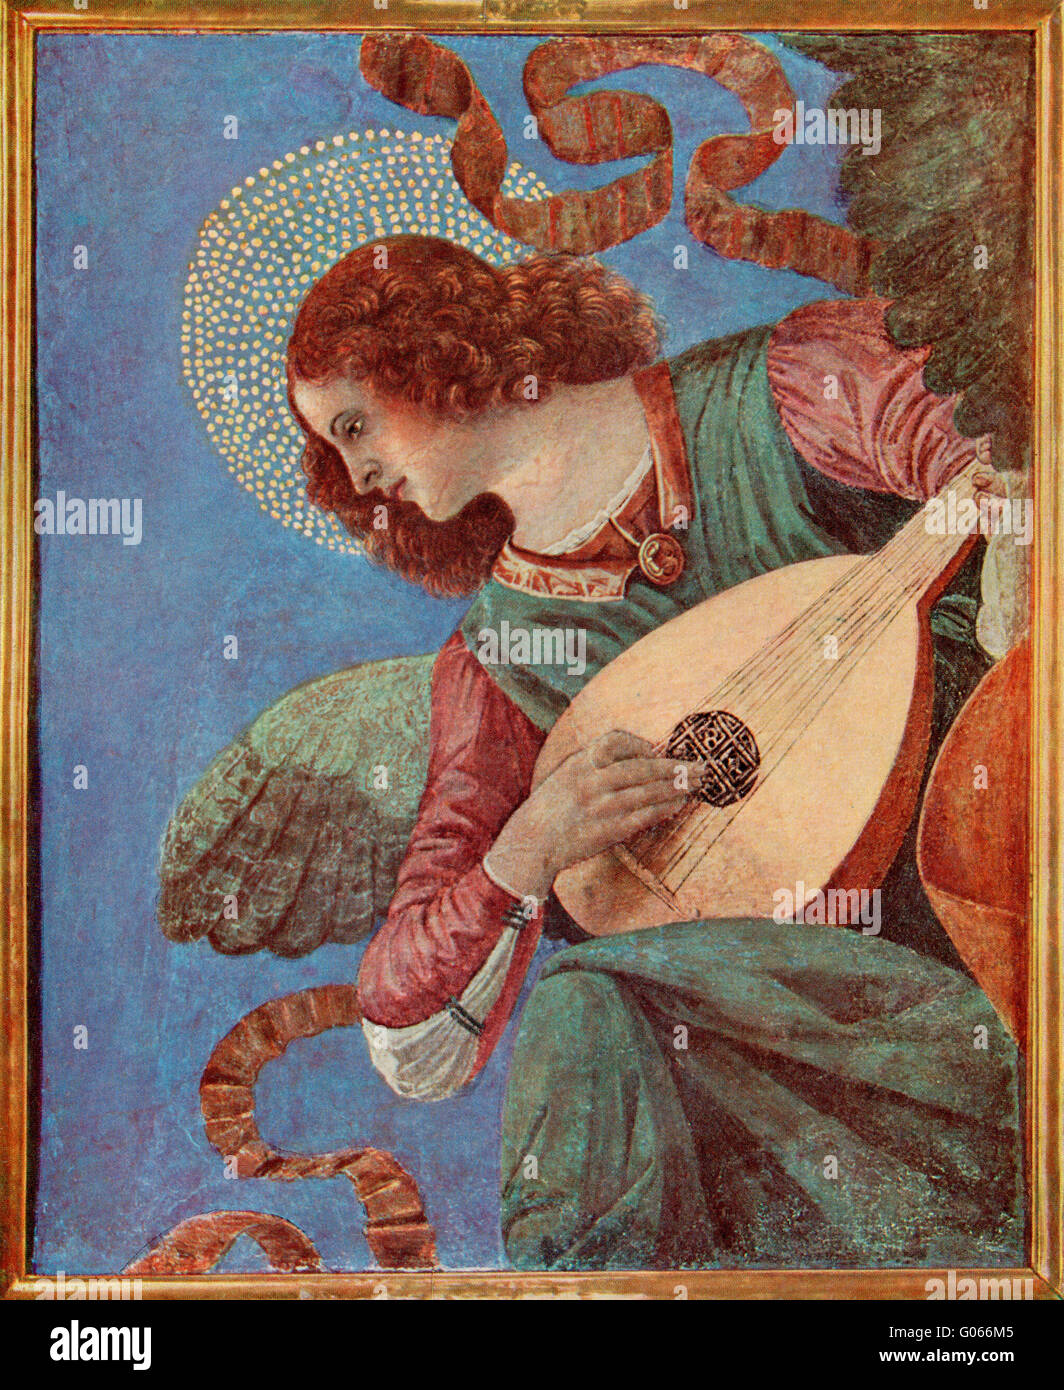 Musician Angel, after the fresco paintings of the Basilica dei Santi Apostoli, Pinacoteca of the Vatican Museums, - Stock Image